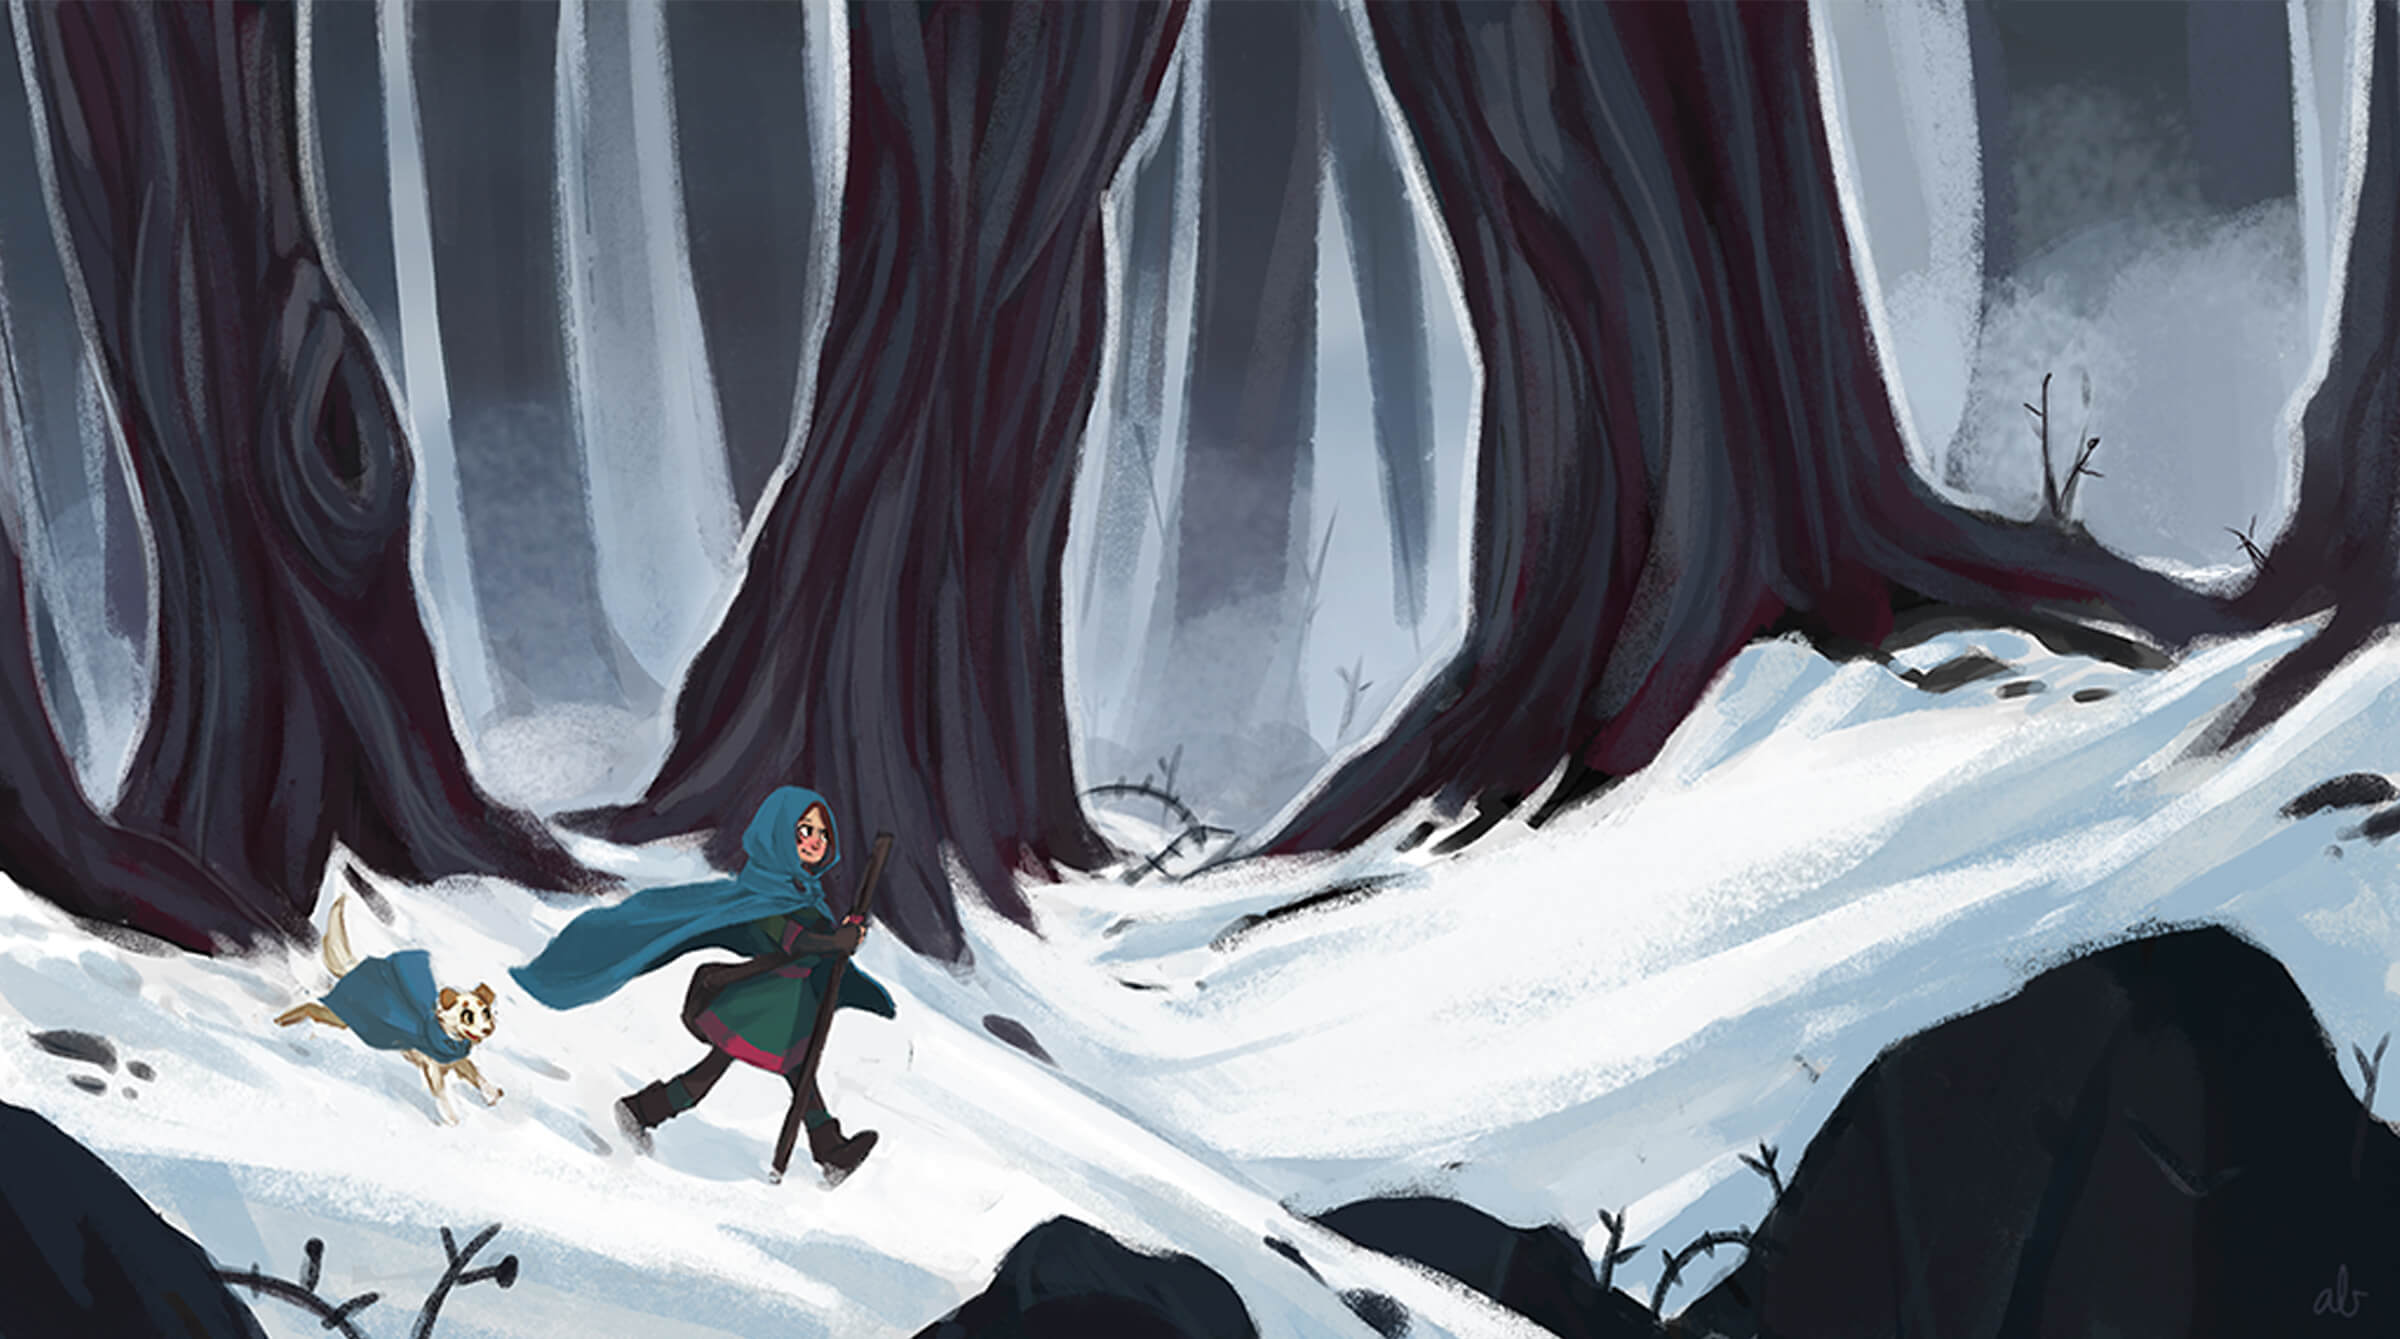 digital painting of a girl and her dogs, both in blue capes, walking through a snowy forest